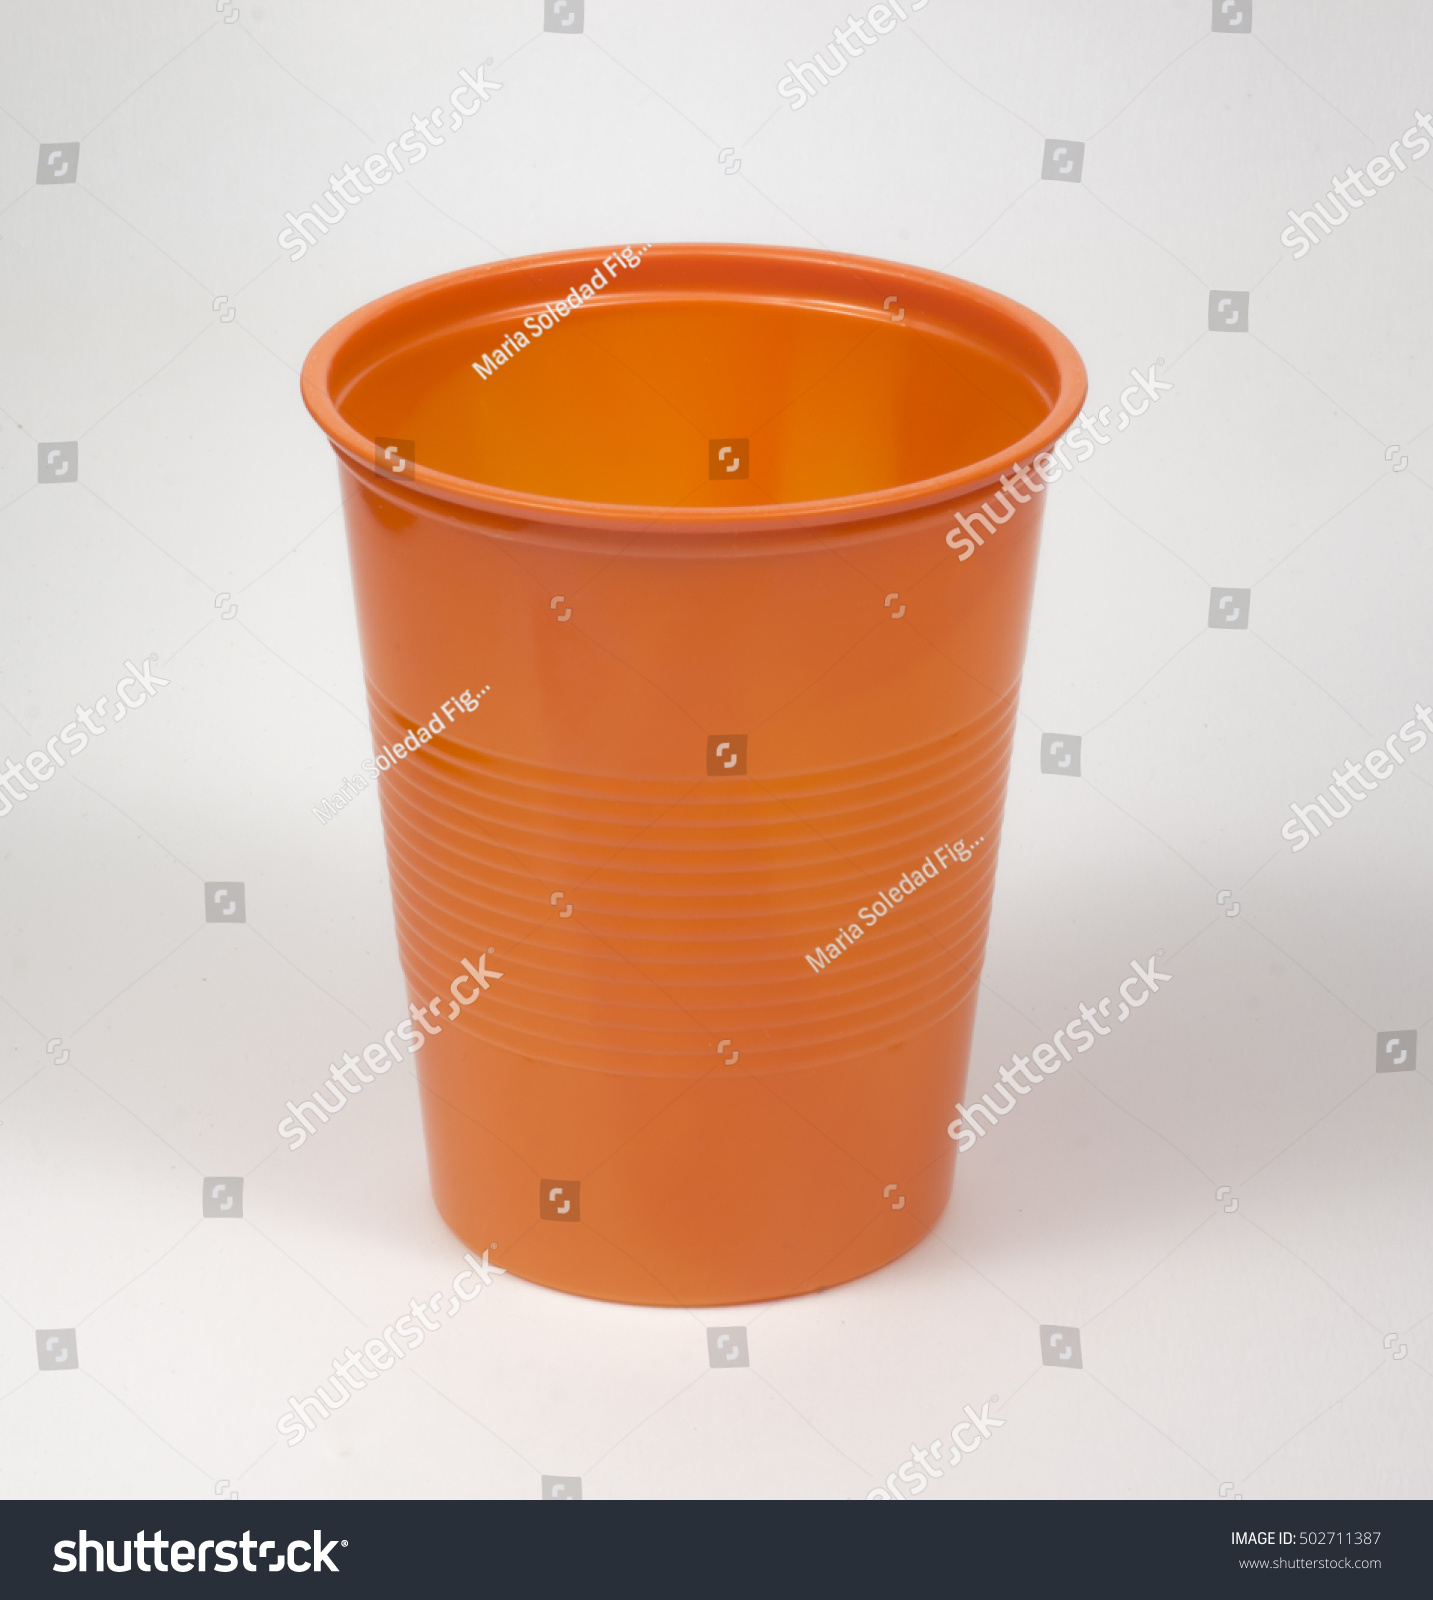 Marias Küche Catering Orange Plastic Disposable Cup Event Catering Stock Photo Edit Now